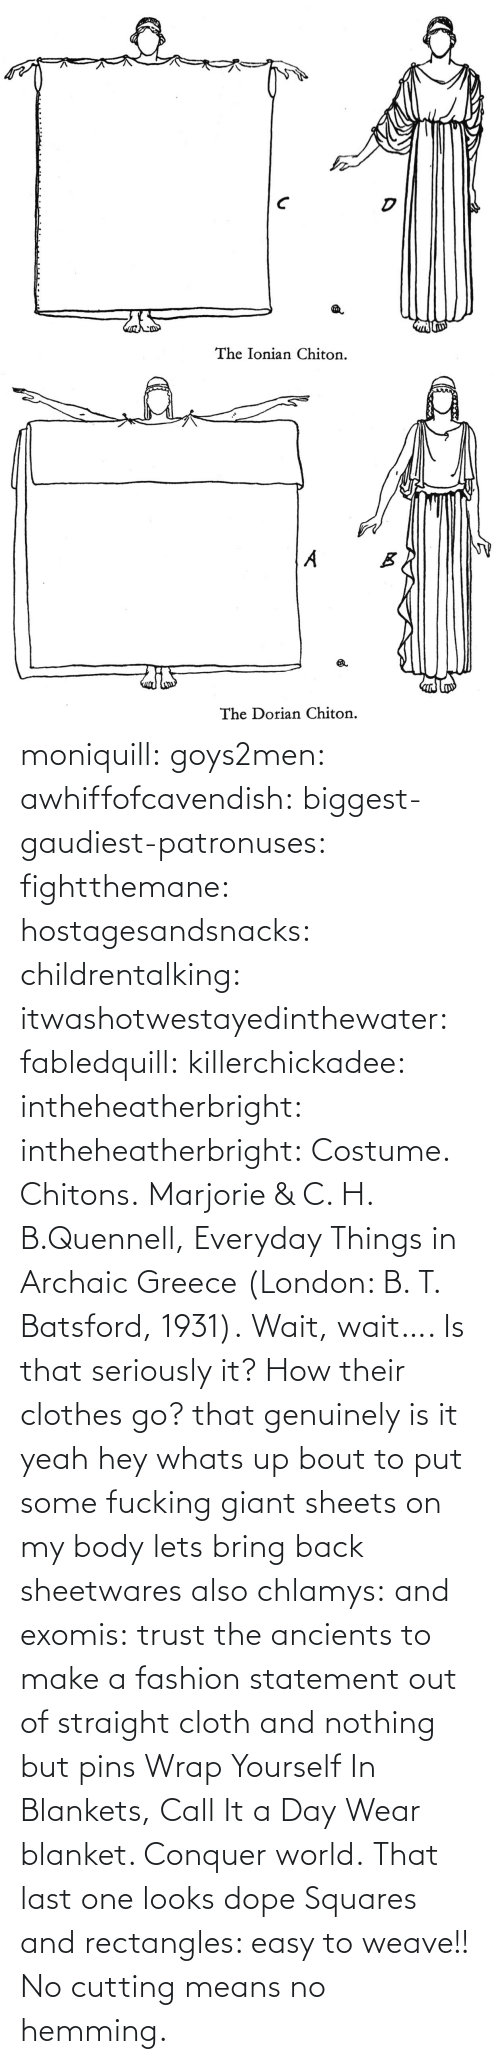 Last: moniquill: goys2men:  awhiffofcavendish:  biggest-gaudiest-patronuses:  fightthemane:  hostagesandsnacks:  childrentalking:  itwashotwestayedinthewater:  fabledquill:  killerchickadee:  intheheatherbright:  intheheatherbright:  Costume. Chitons.  Marjorie & C. H. B.Quennell, Everyday Things in Archaic Greece (London: B. T. Batsford, 1931).  Wait, wait…. Is that seriously it? How their clothes go?  that genuinely is it  yeah hey whats up bout to put some fucking giant sheets on my body  lets bring back sheetwares  also chlamys: and exomis:  trust the ancients to make a fashion statement out of straight cloth and nothing but pins  Wrap Yourself In Blankets, Call It a Day  Wear blanket. Conquer world.   That last one looks dope    Squares and rectangles: easy to weave!! No cutting means no hemming.